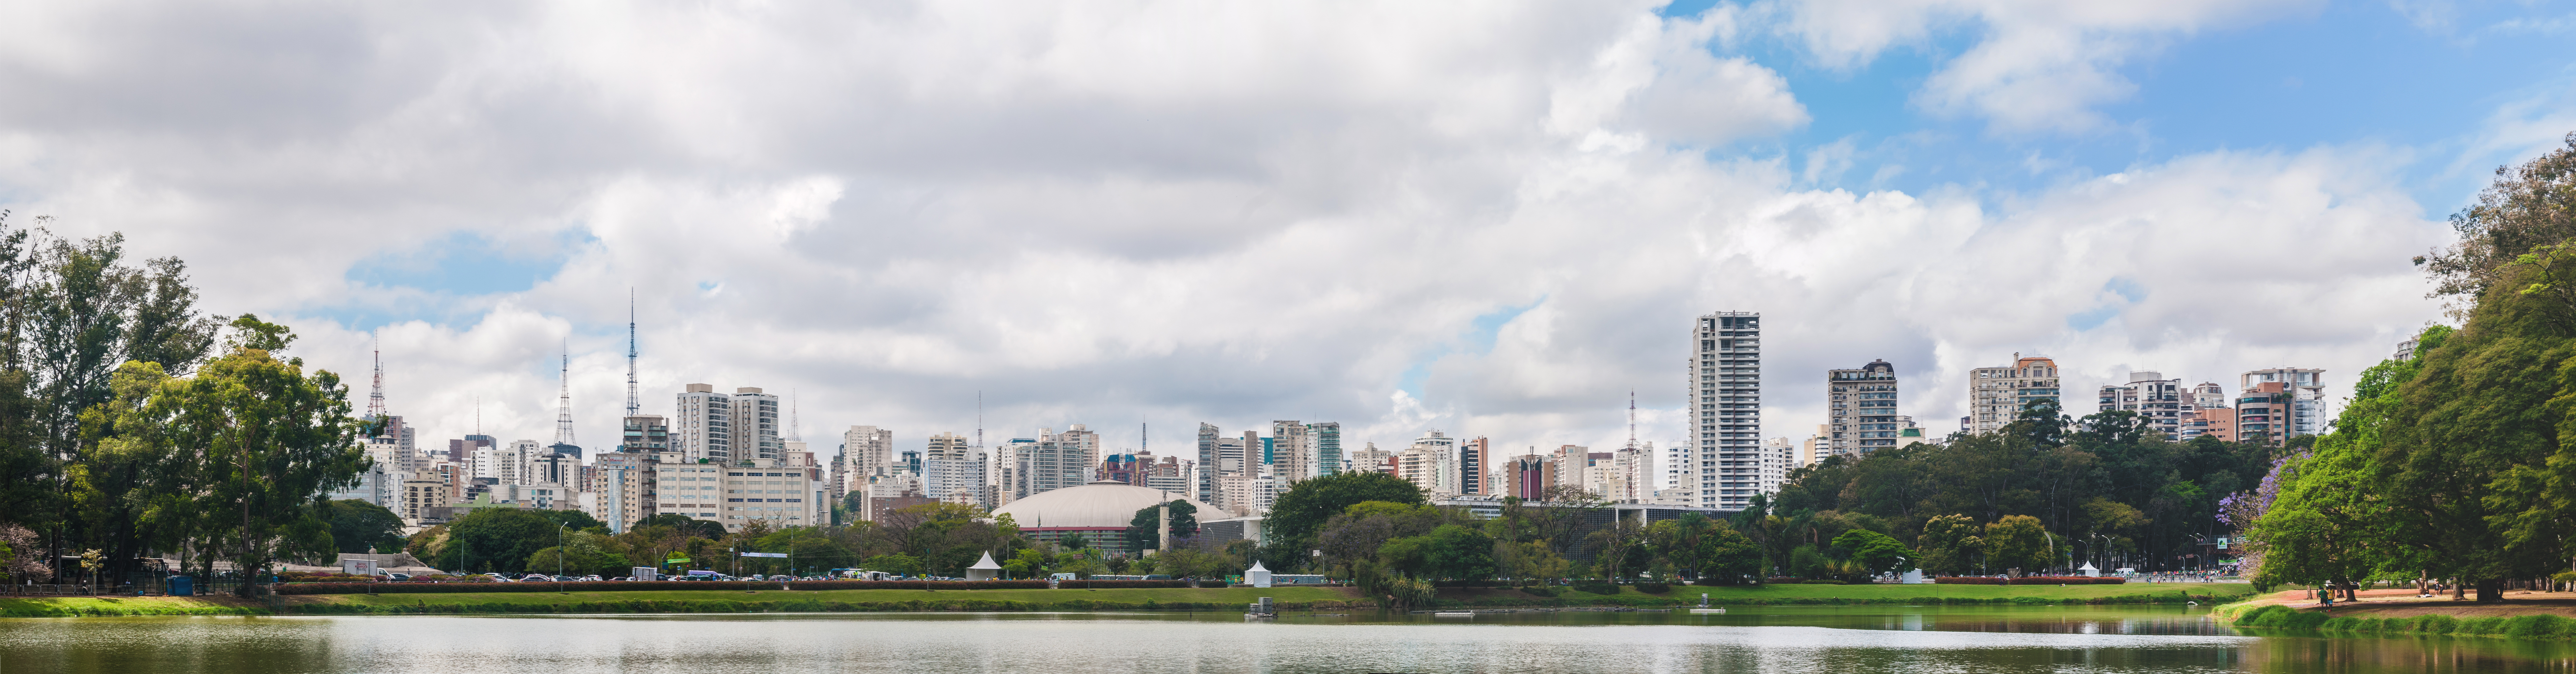 b9bcc0655b File Panoramic view of Ibirapuera Park